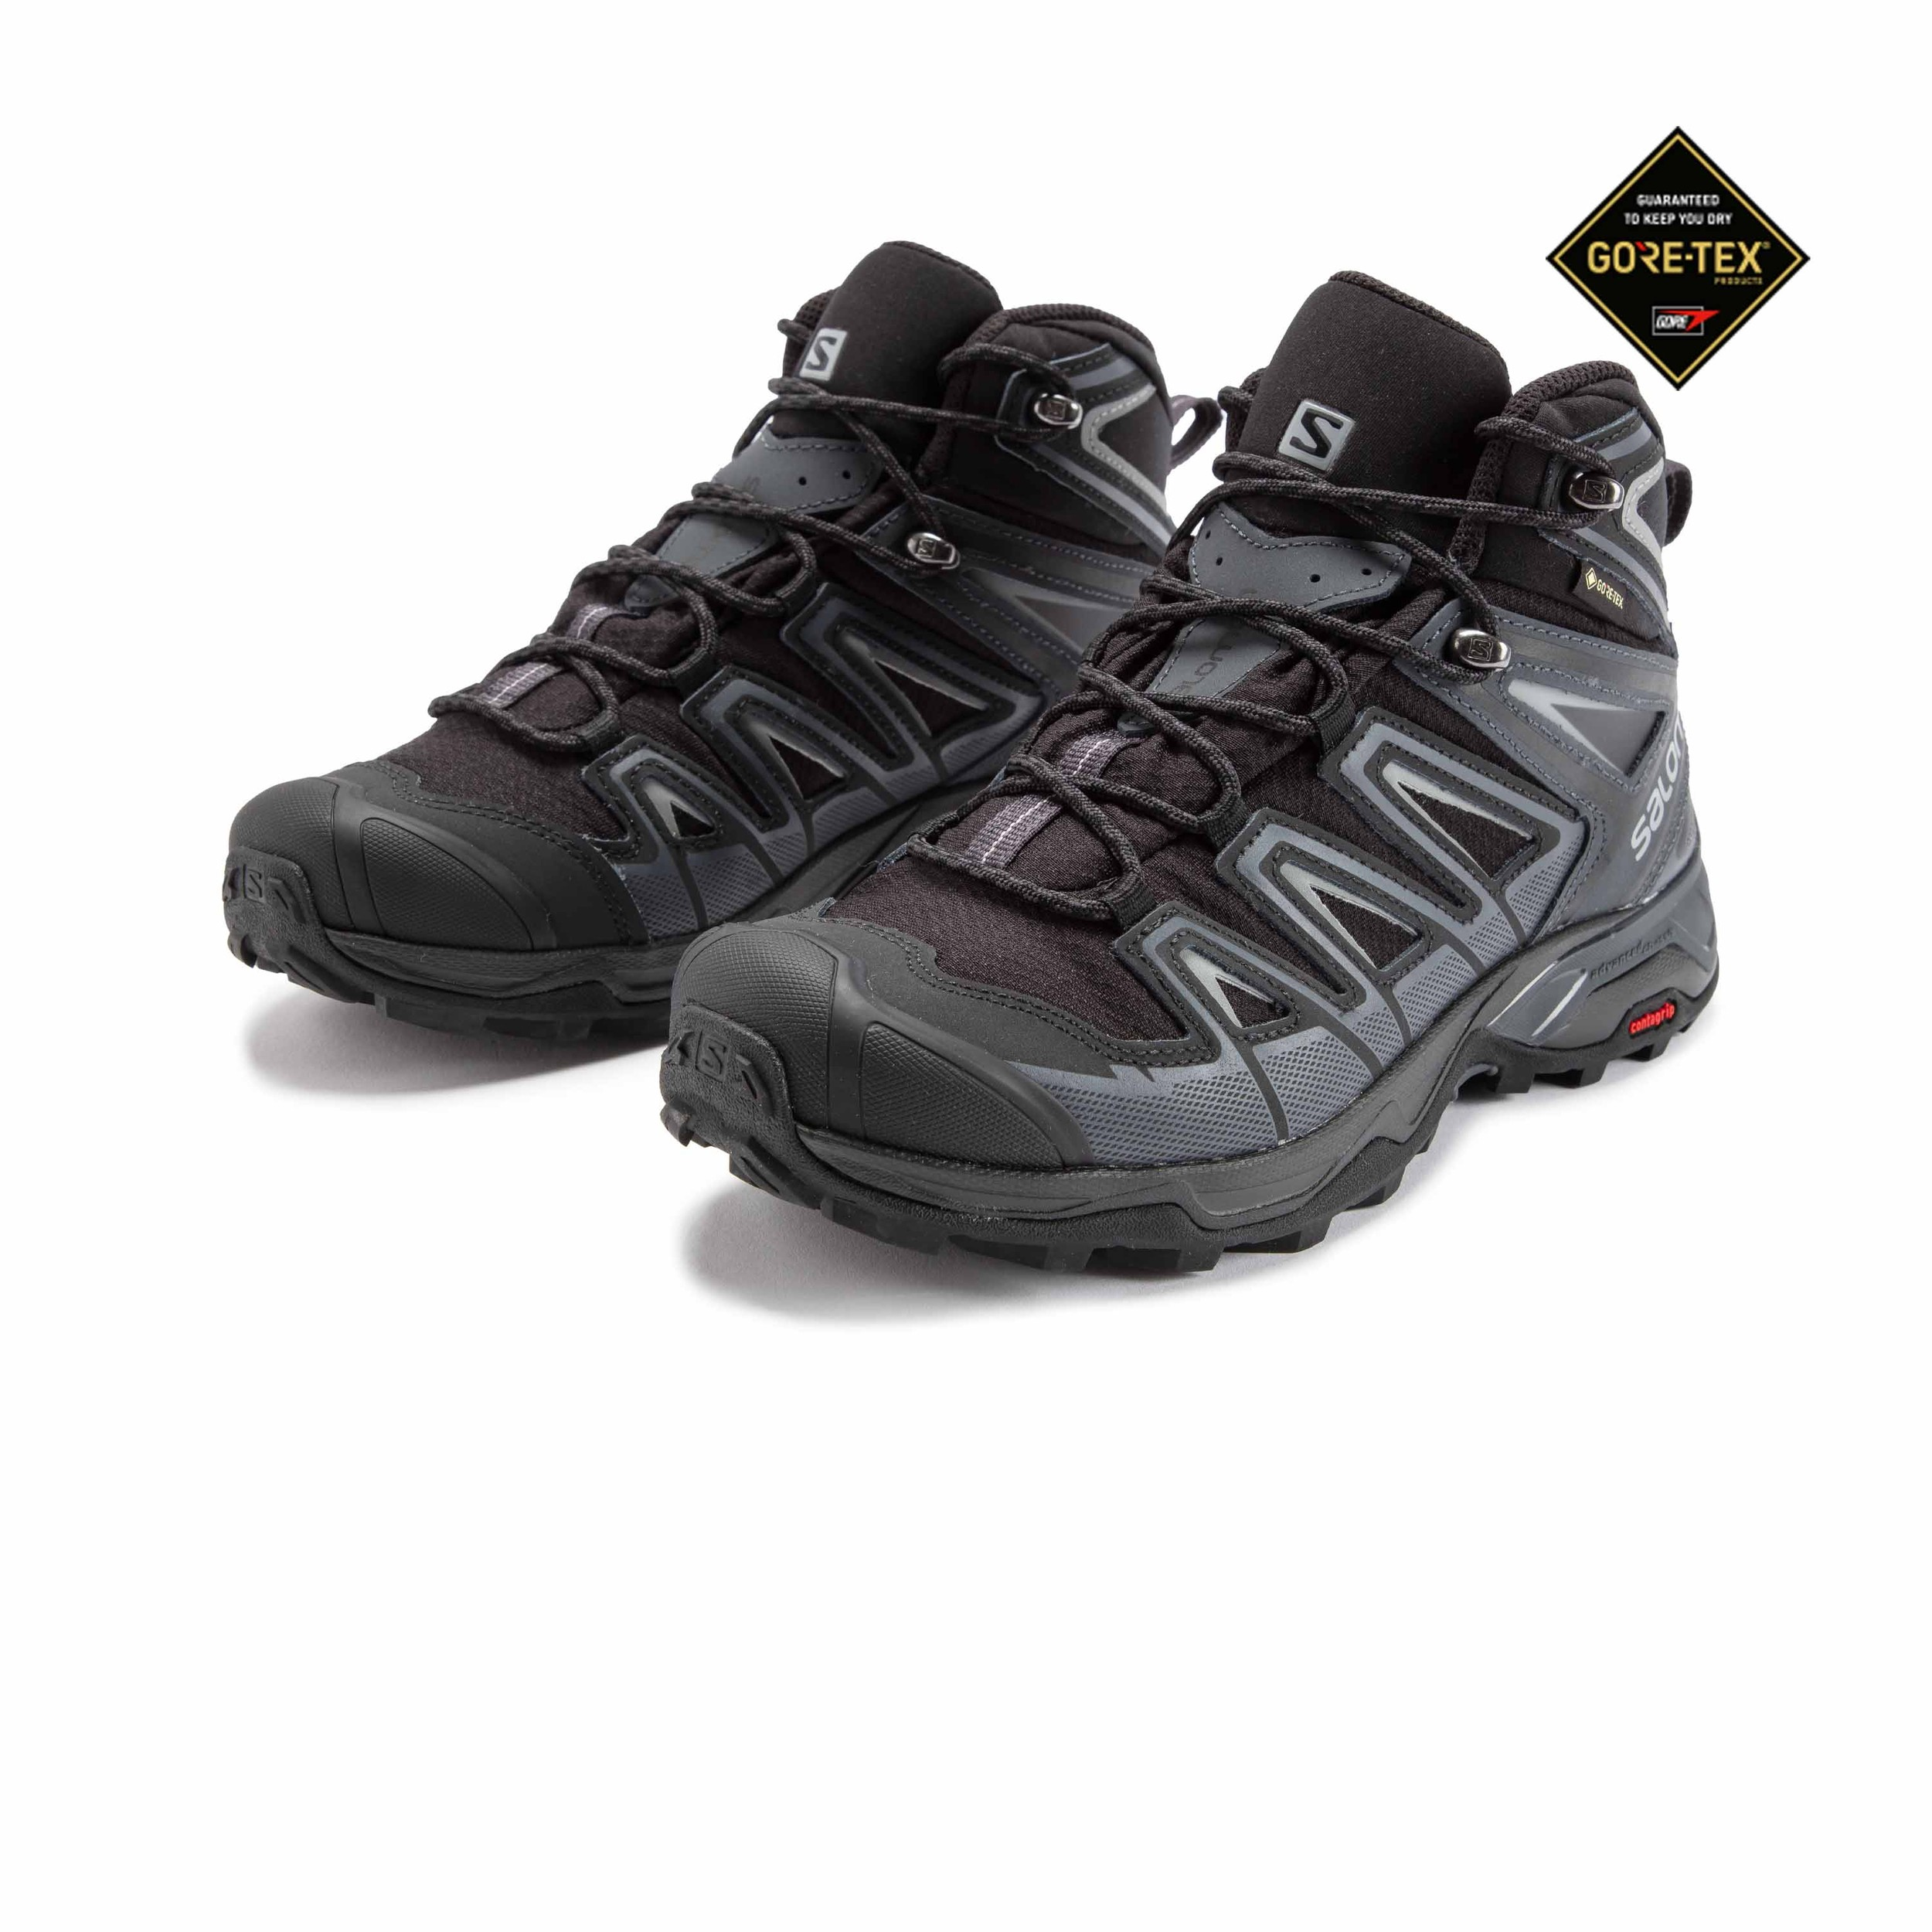 new style b5ff1 3061b Details about Salomon X Ultra Mid 3 Mens Black Gore Tex Walking Hiking  Shoes Boots